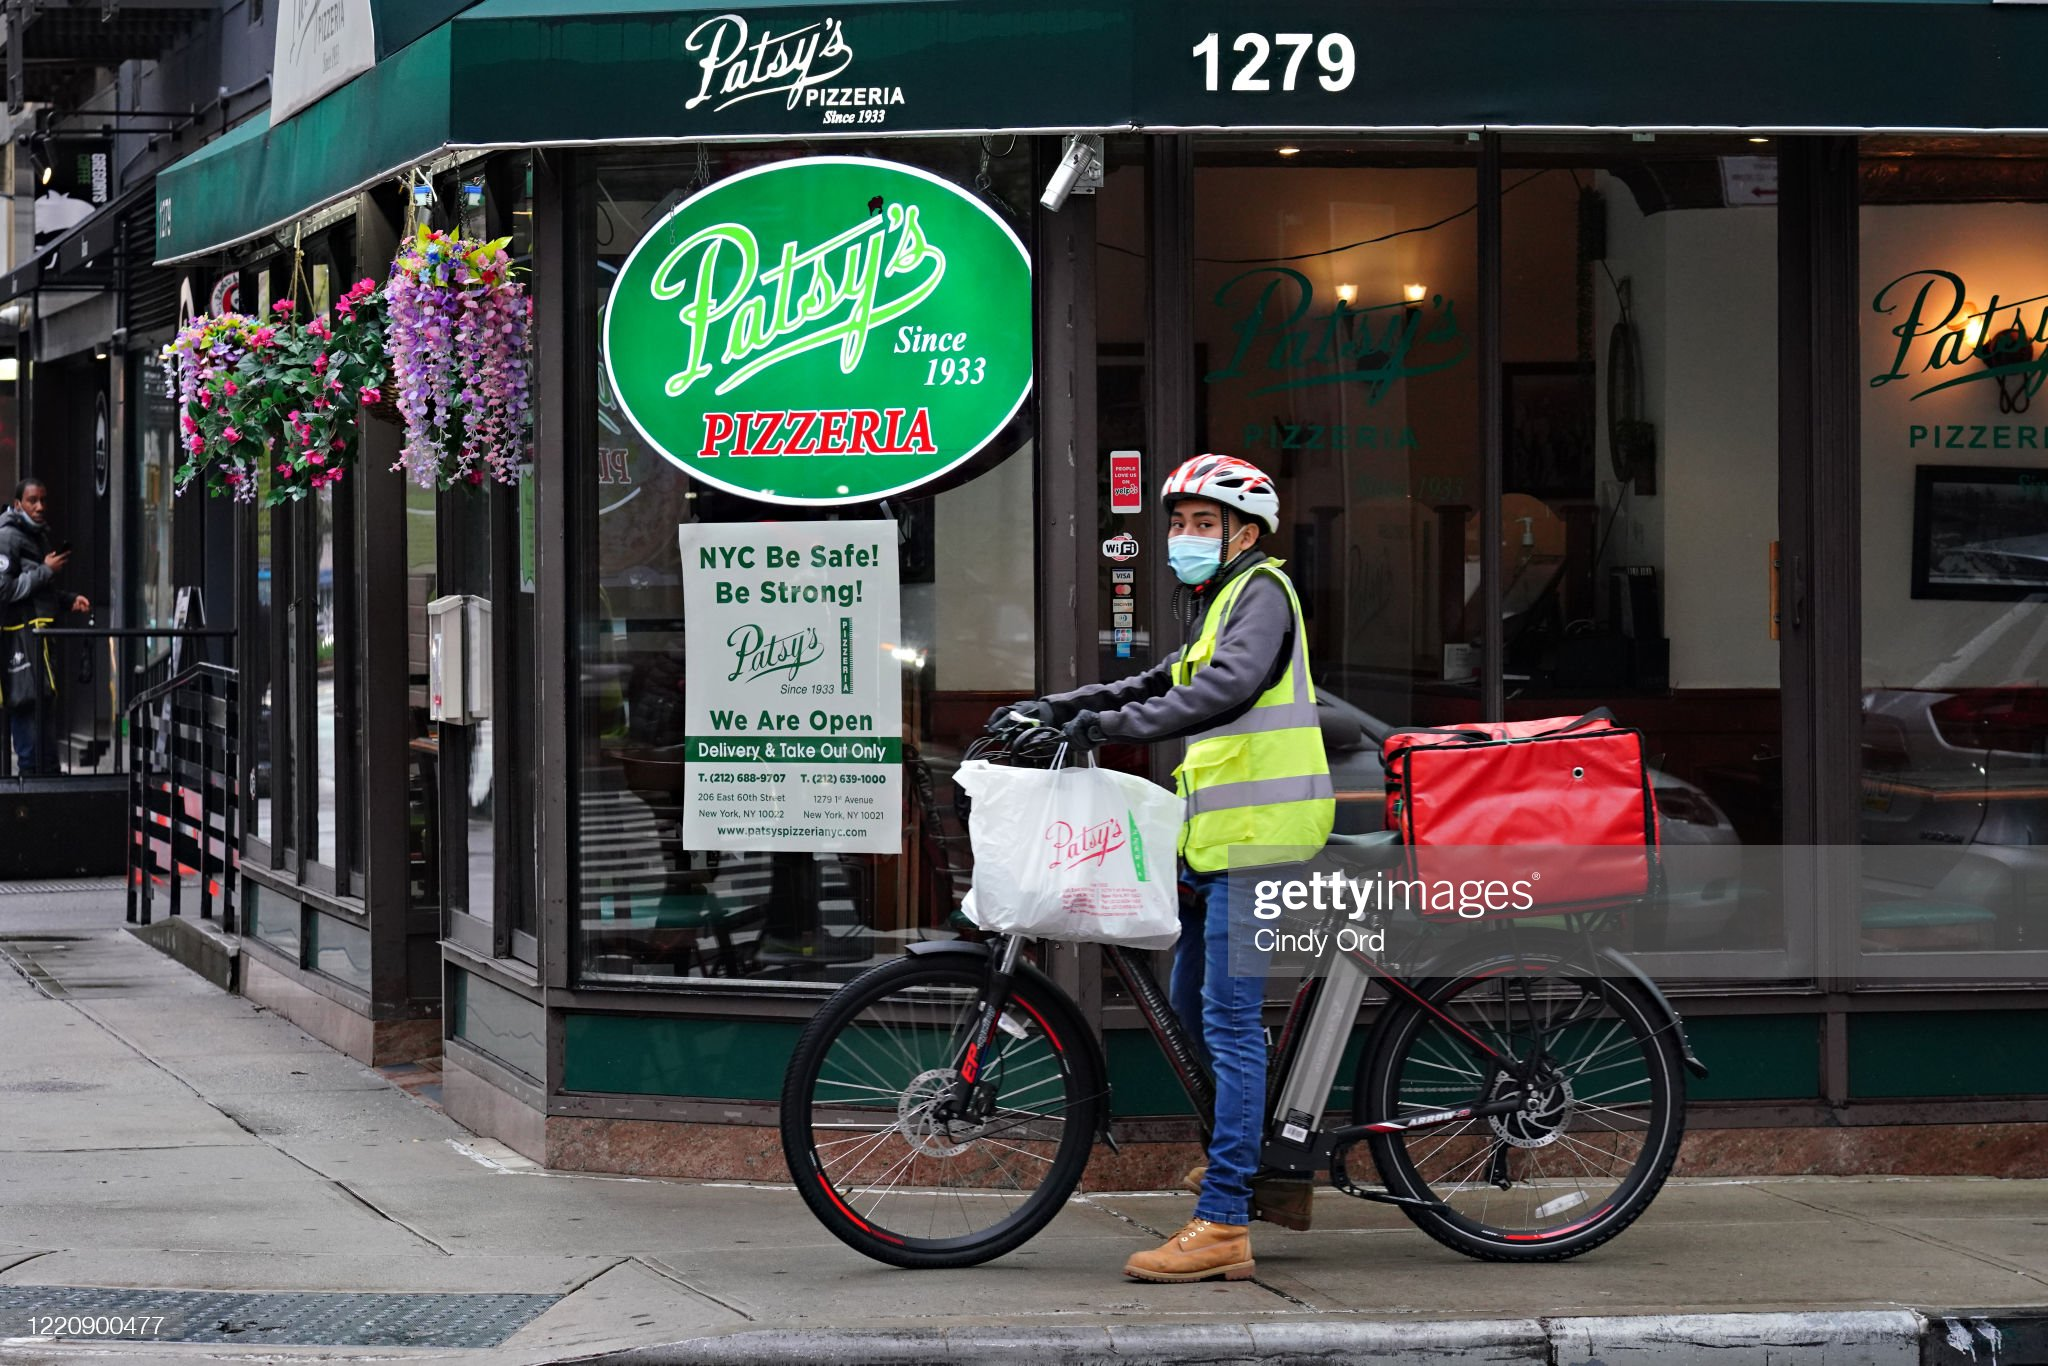 [Image: restaurant-delivery-worker-on-his-bike-s...=2048x2048]